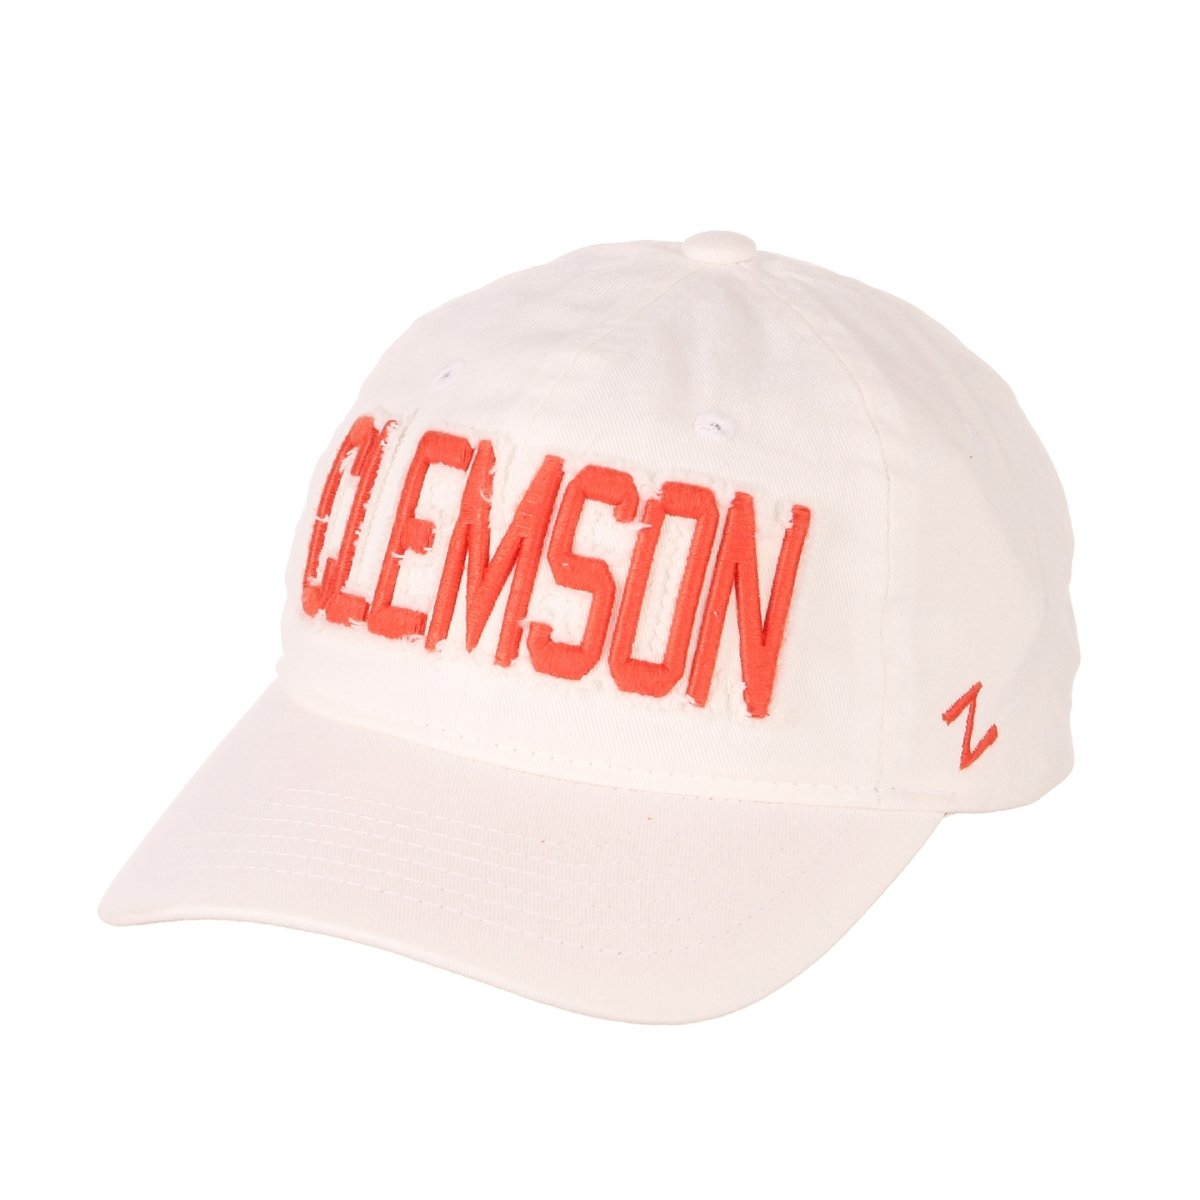 Clemson Tigers Belle Ladies Cap With Frayed Embroidery - Mr. Knickerbocker